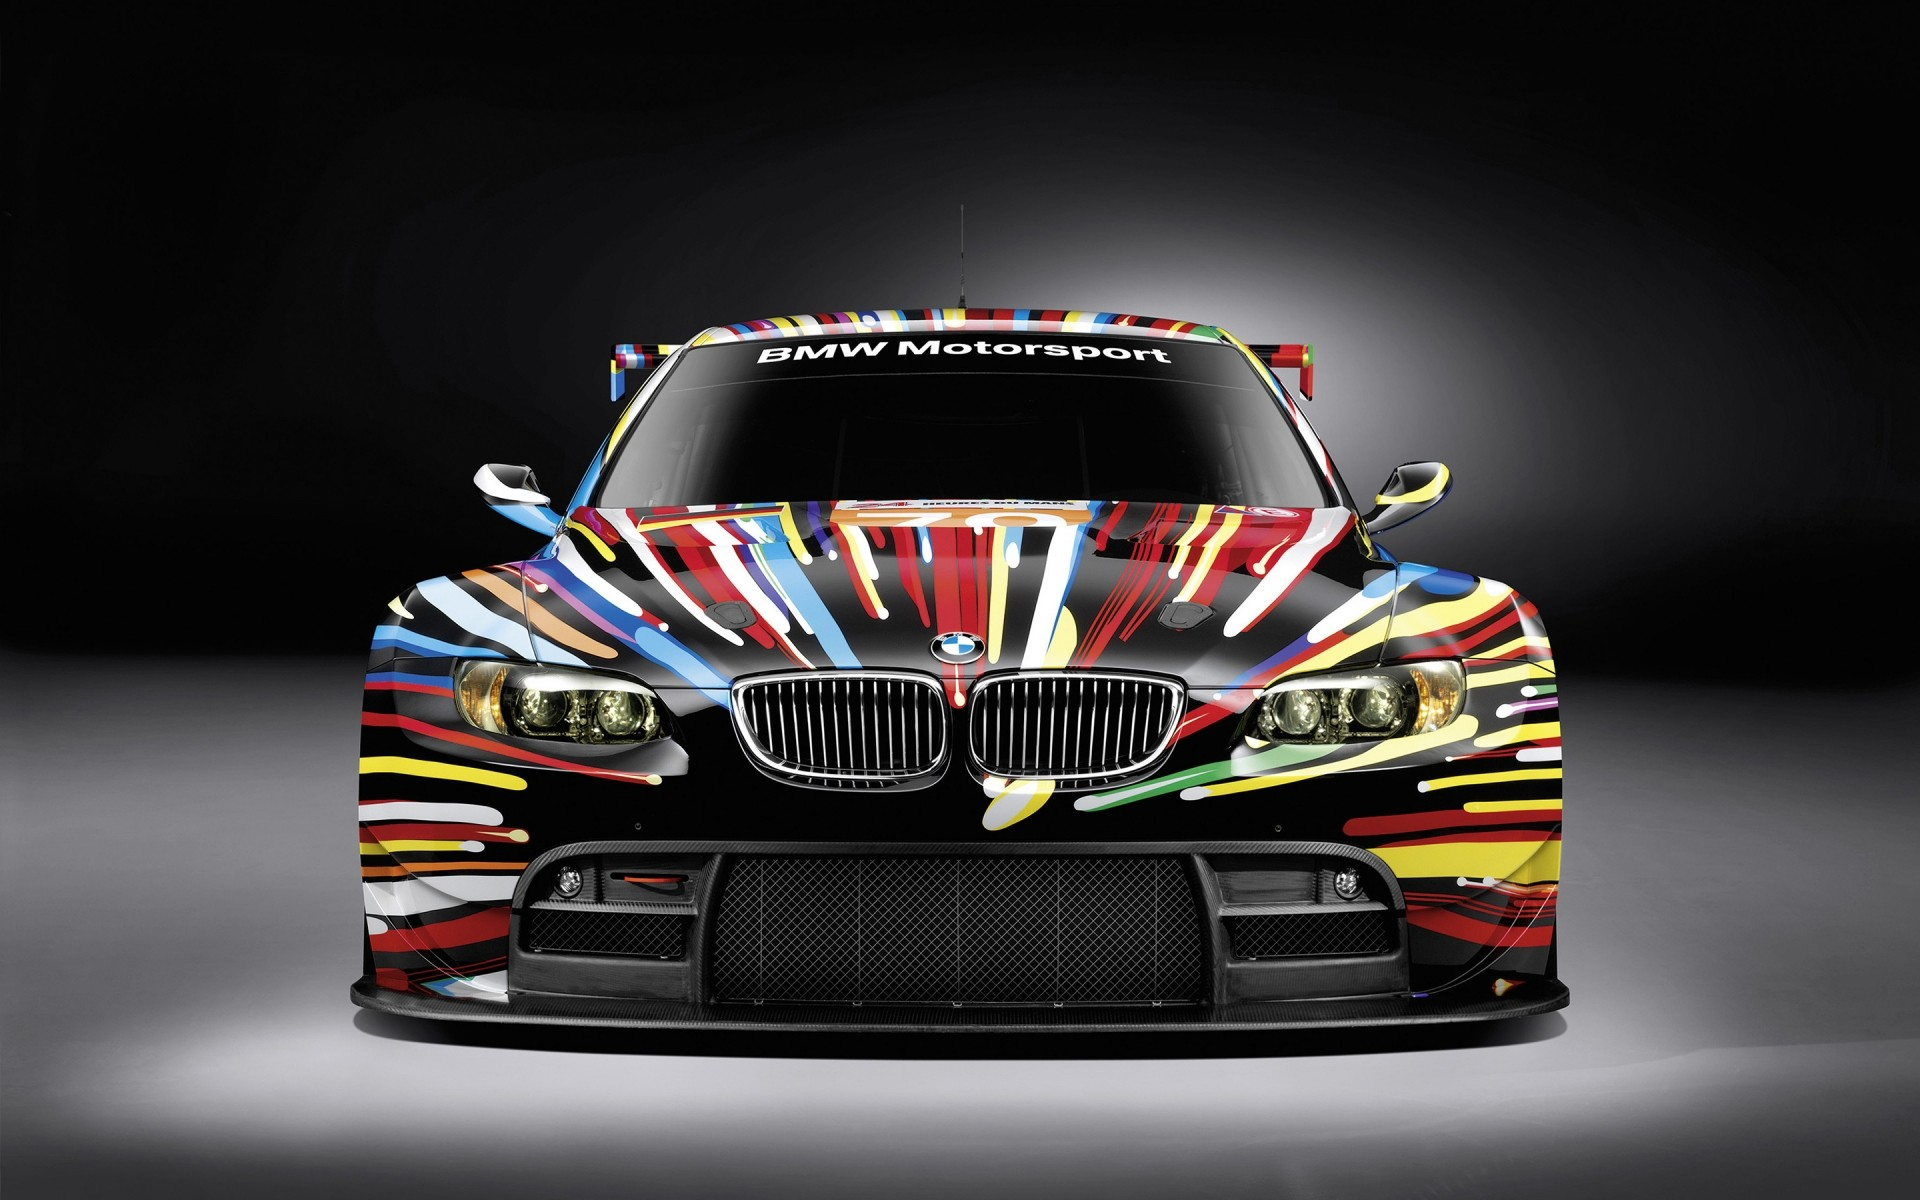 Bmw M3 Gt 2 Art Phone Wallpapers